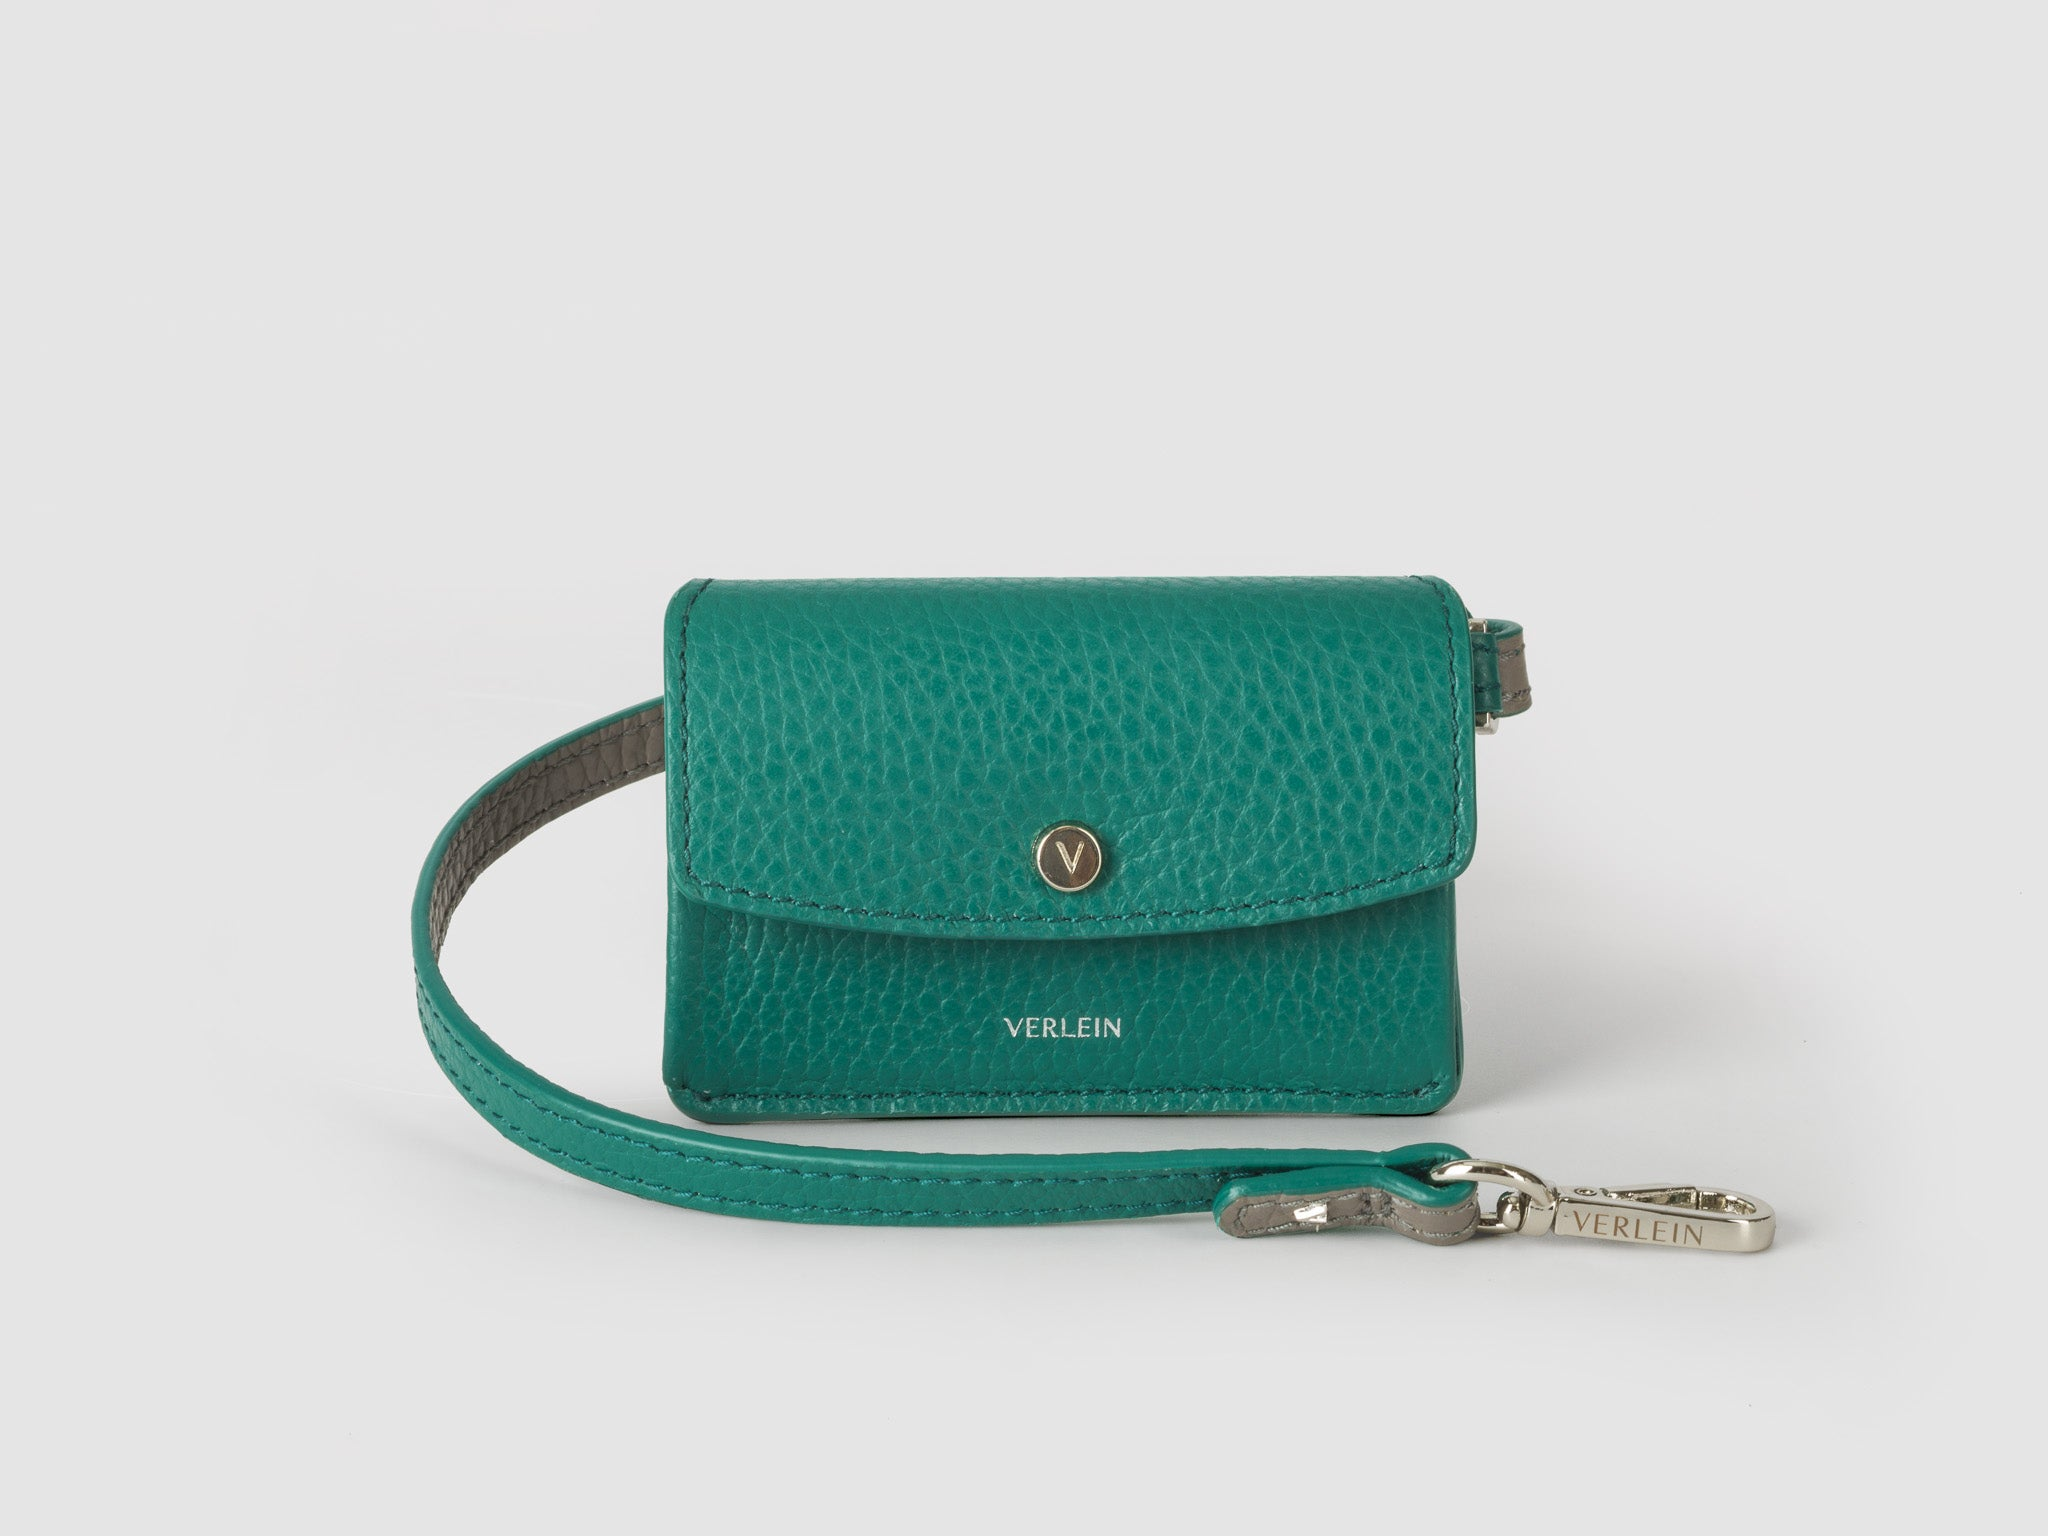 Ines Cinch Coinpurse With Strap, in Emerald Green | Verlein